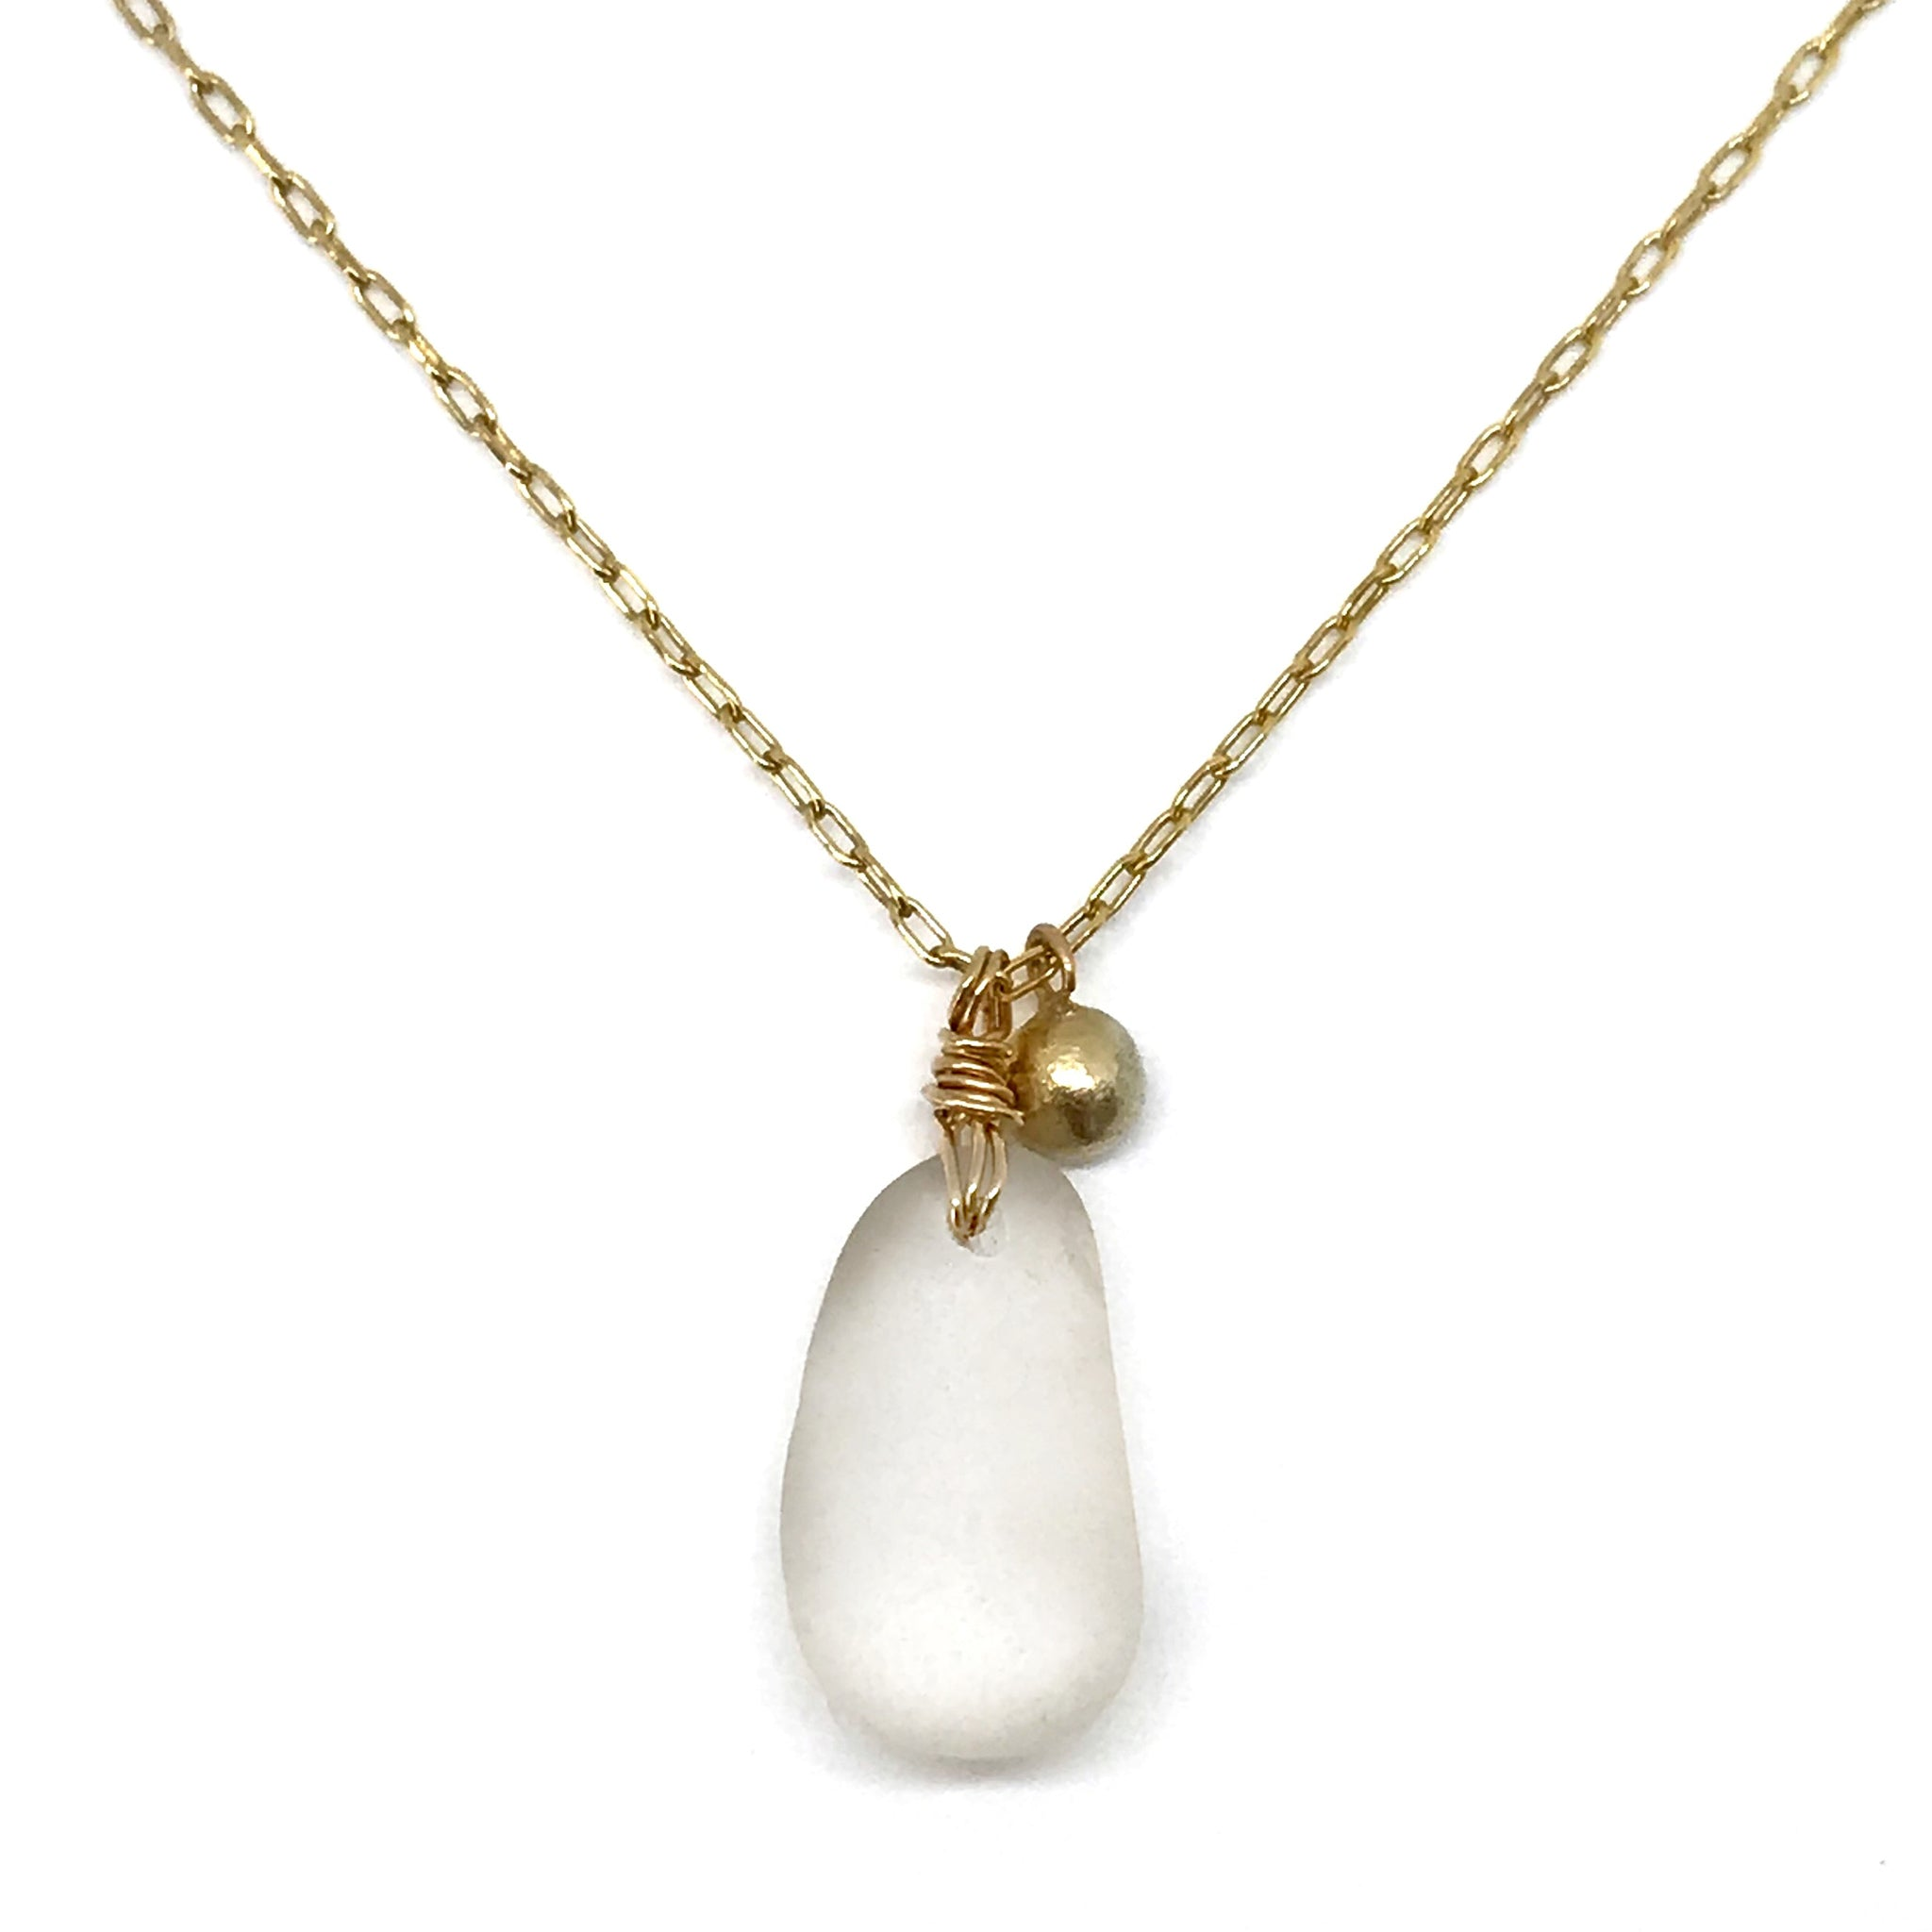 Clear Seaglass Necklace on Long Gold chain with gold charm  - kriket-broadhurst seaglass jewelry